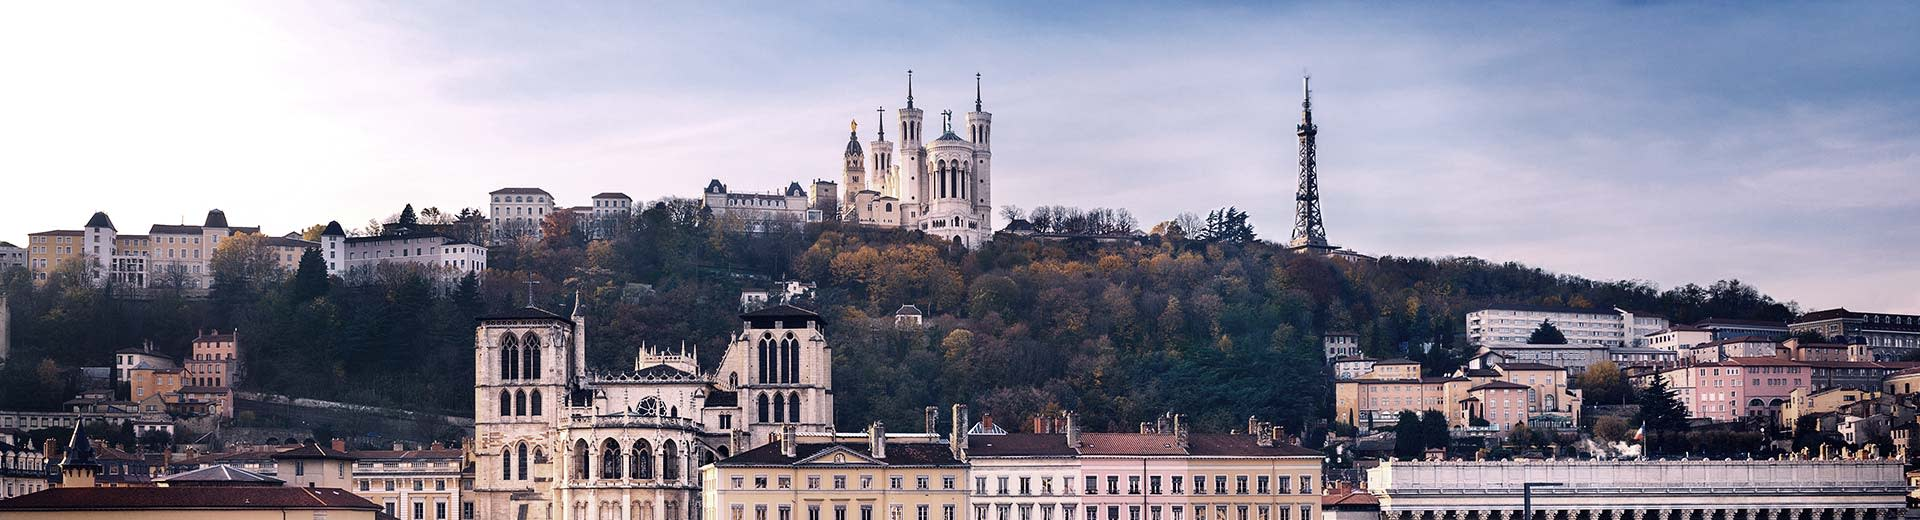 Church steeples above the beautiful French city of Lyon